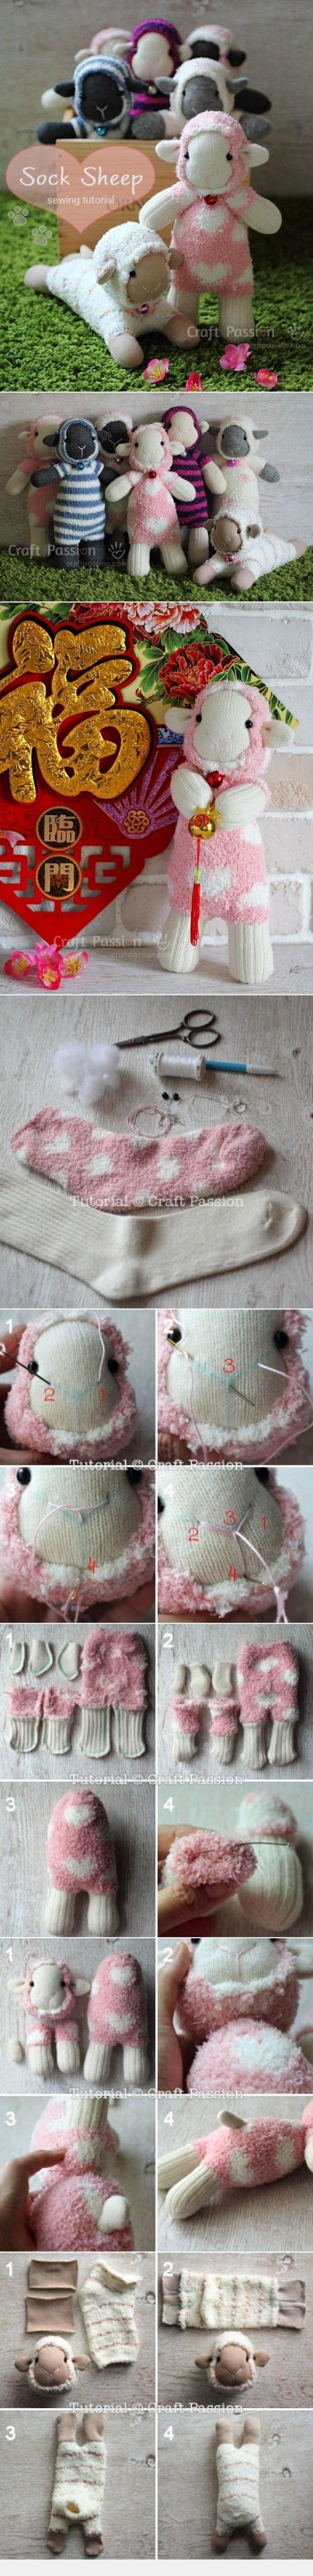 Sew Sock Sheep From Craftpassion